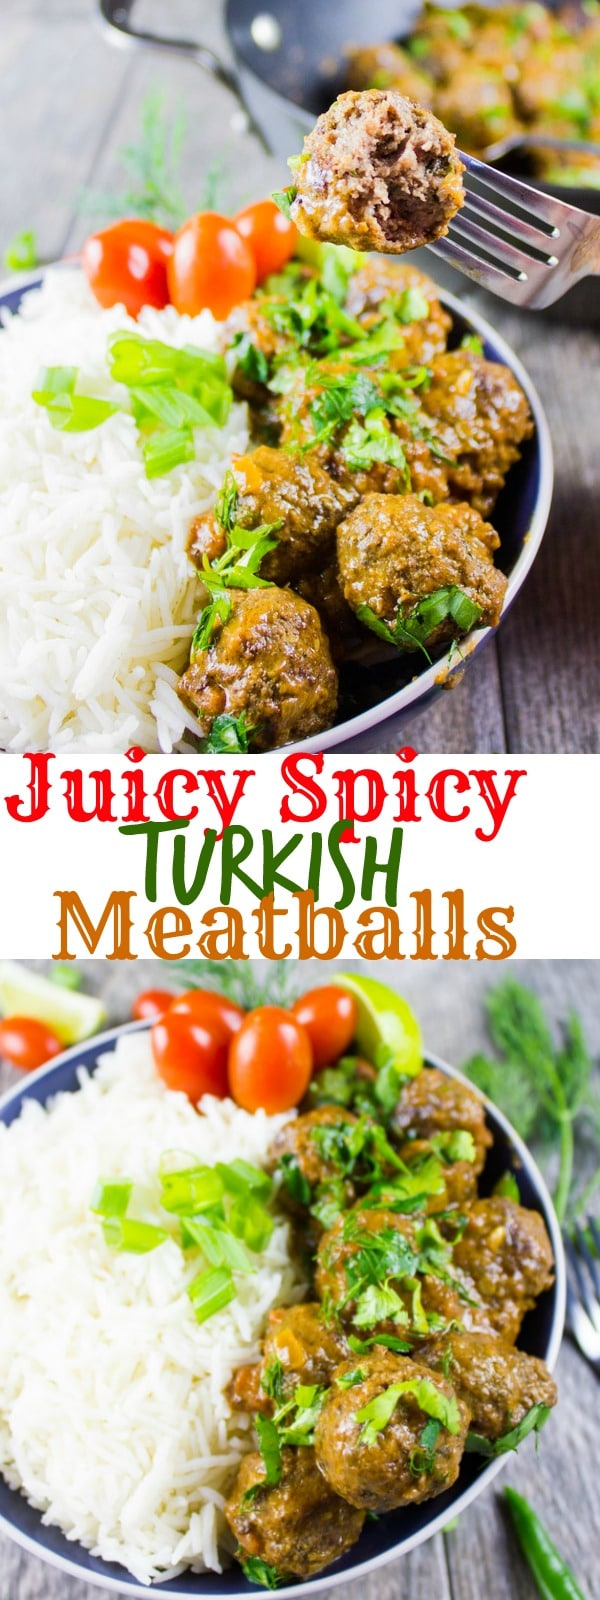 Long Pin for Juicy Spicy Turkish Meatballs